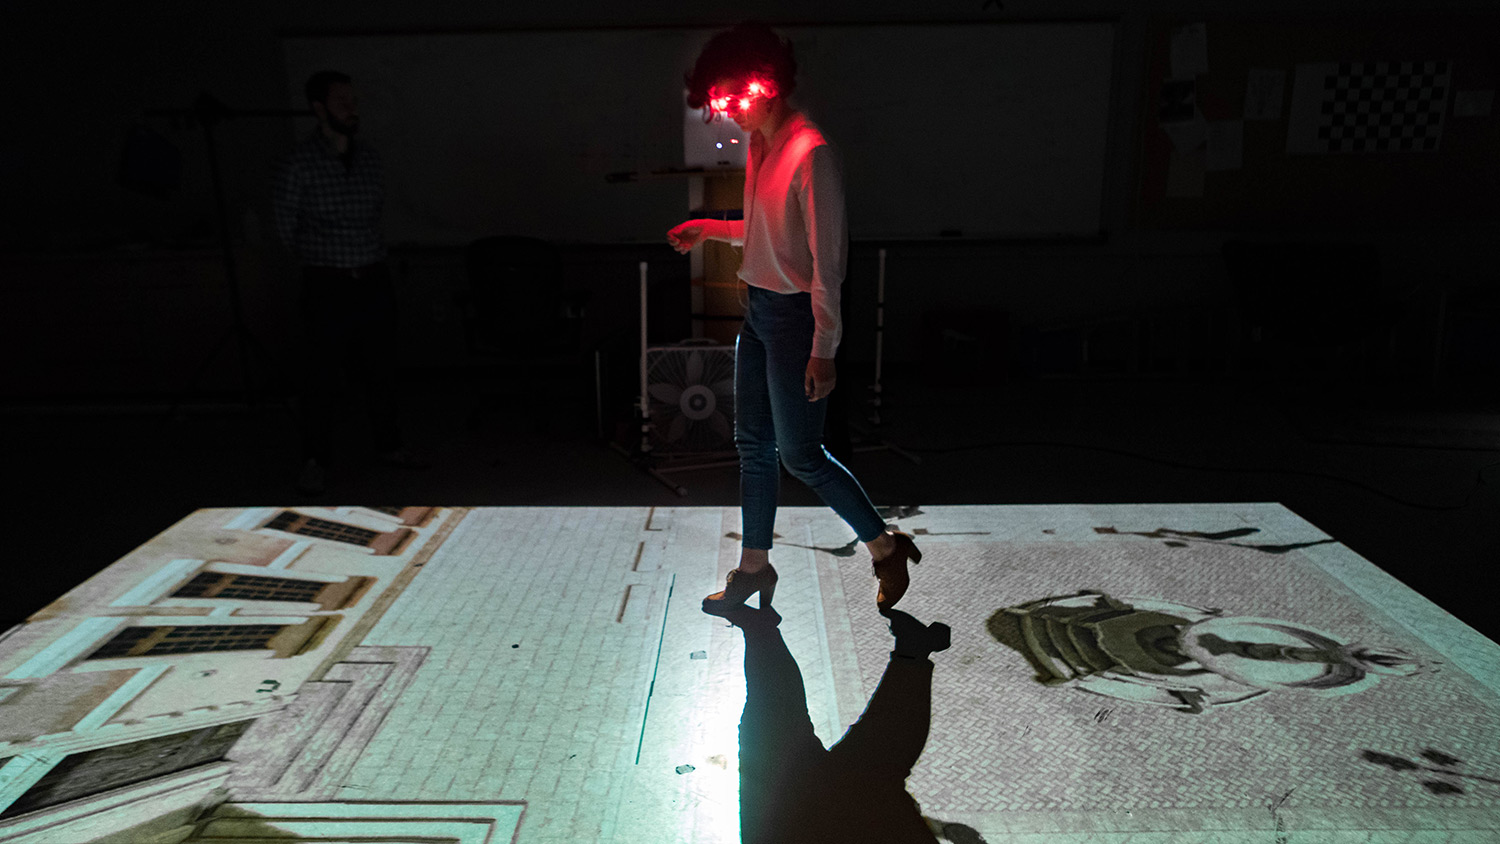 Student wearing lighted headset walks as an image of a brick walkway is projected on the floor